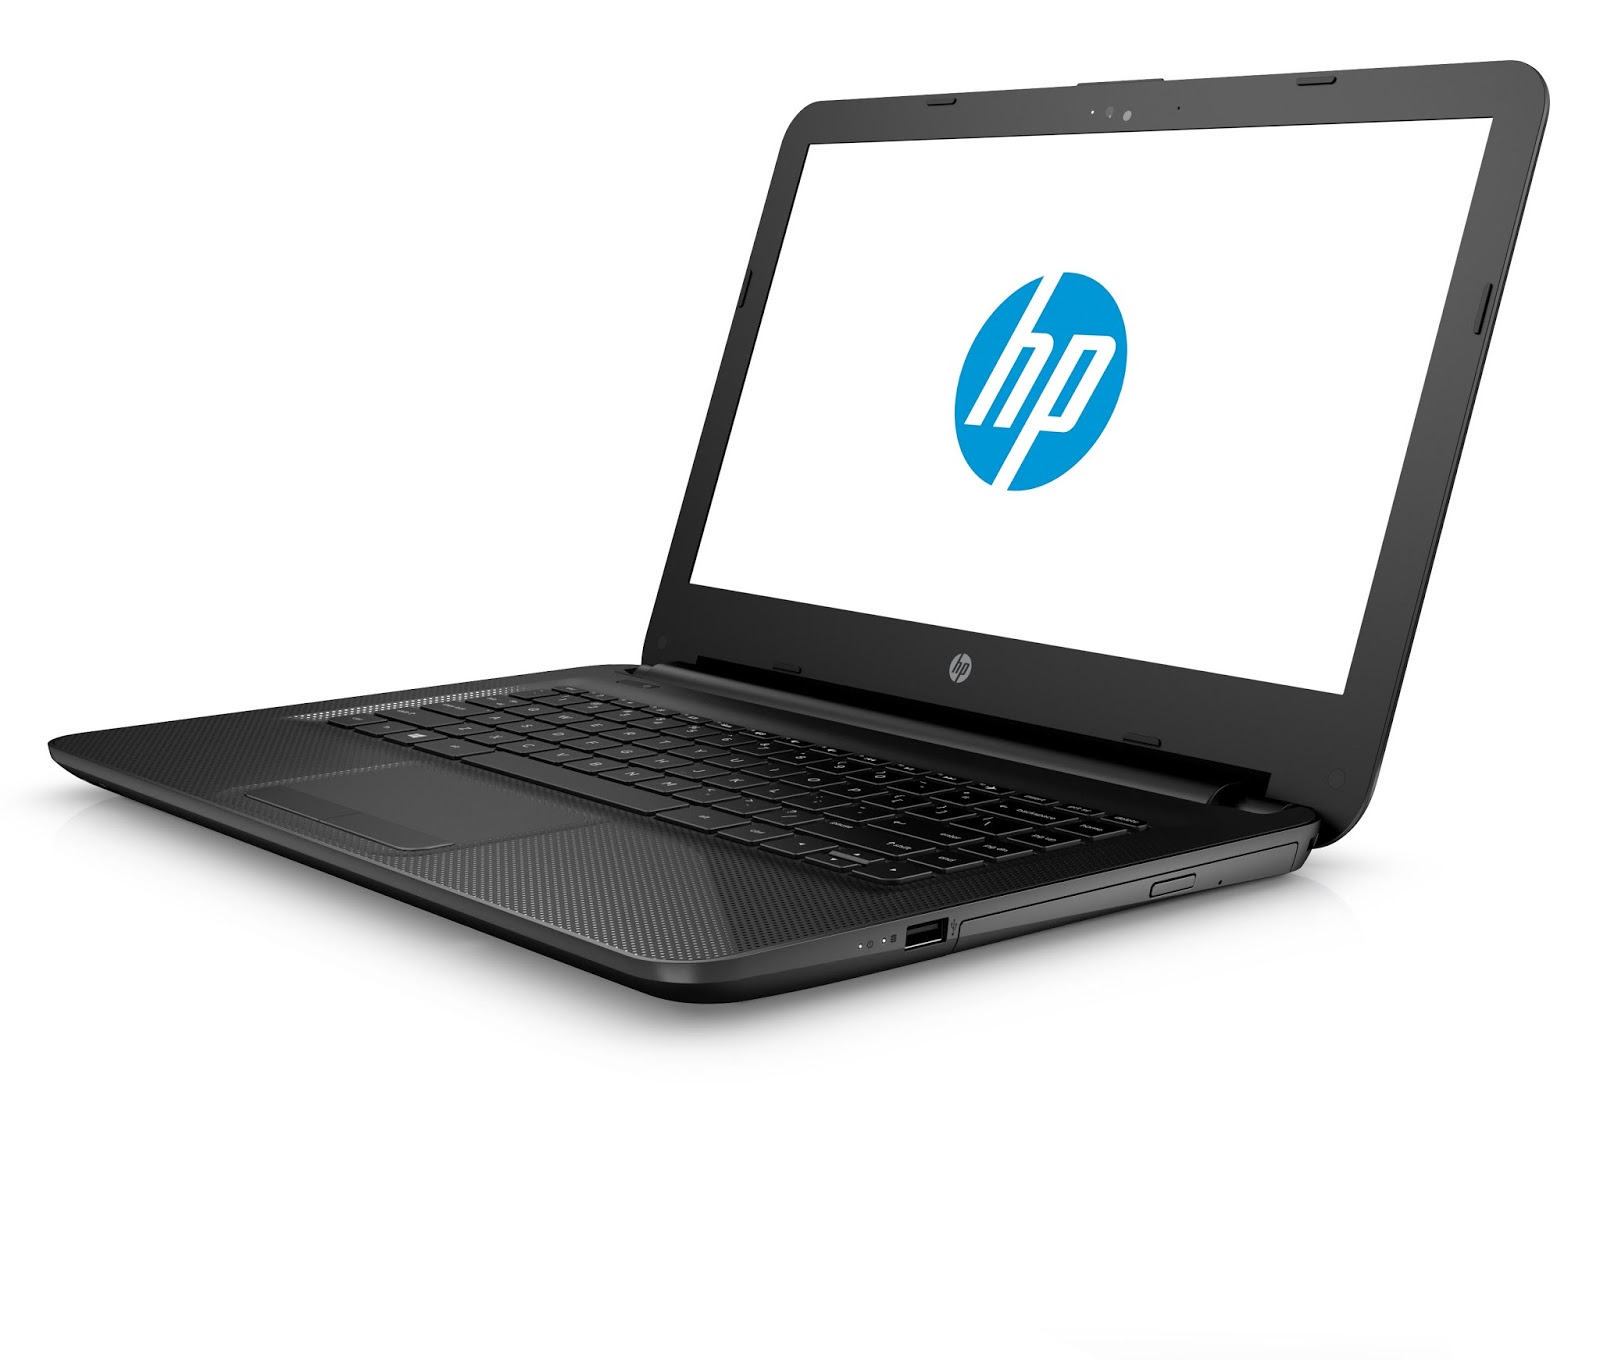 Ulas Singkat Notebook HP 14 AF118AU A8 Carrizo RAM 4GB